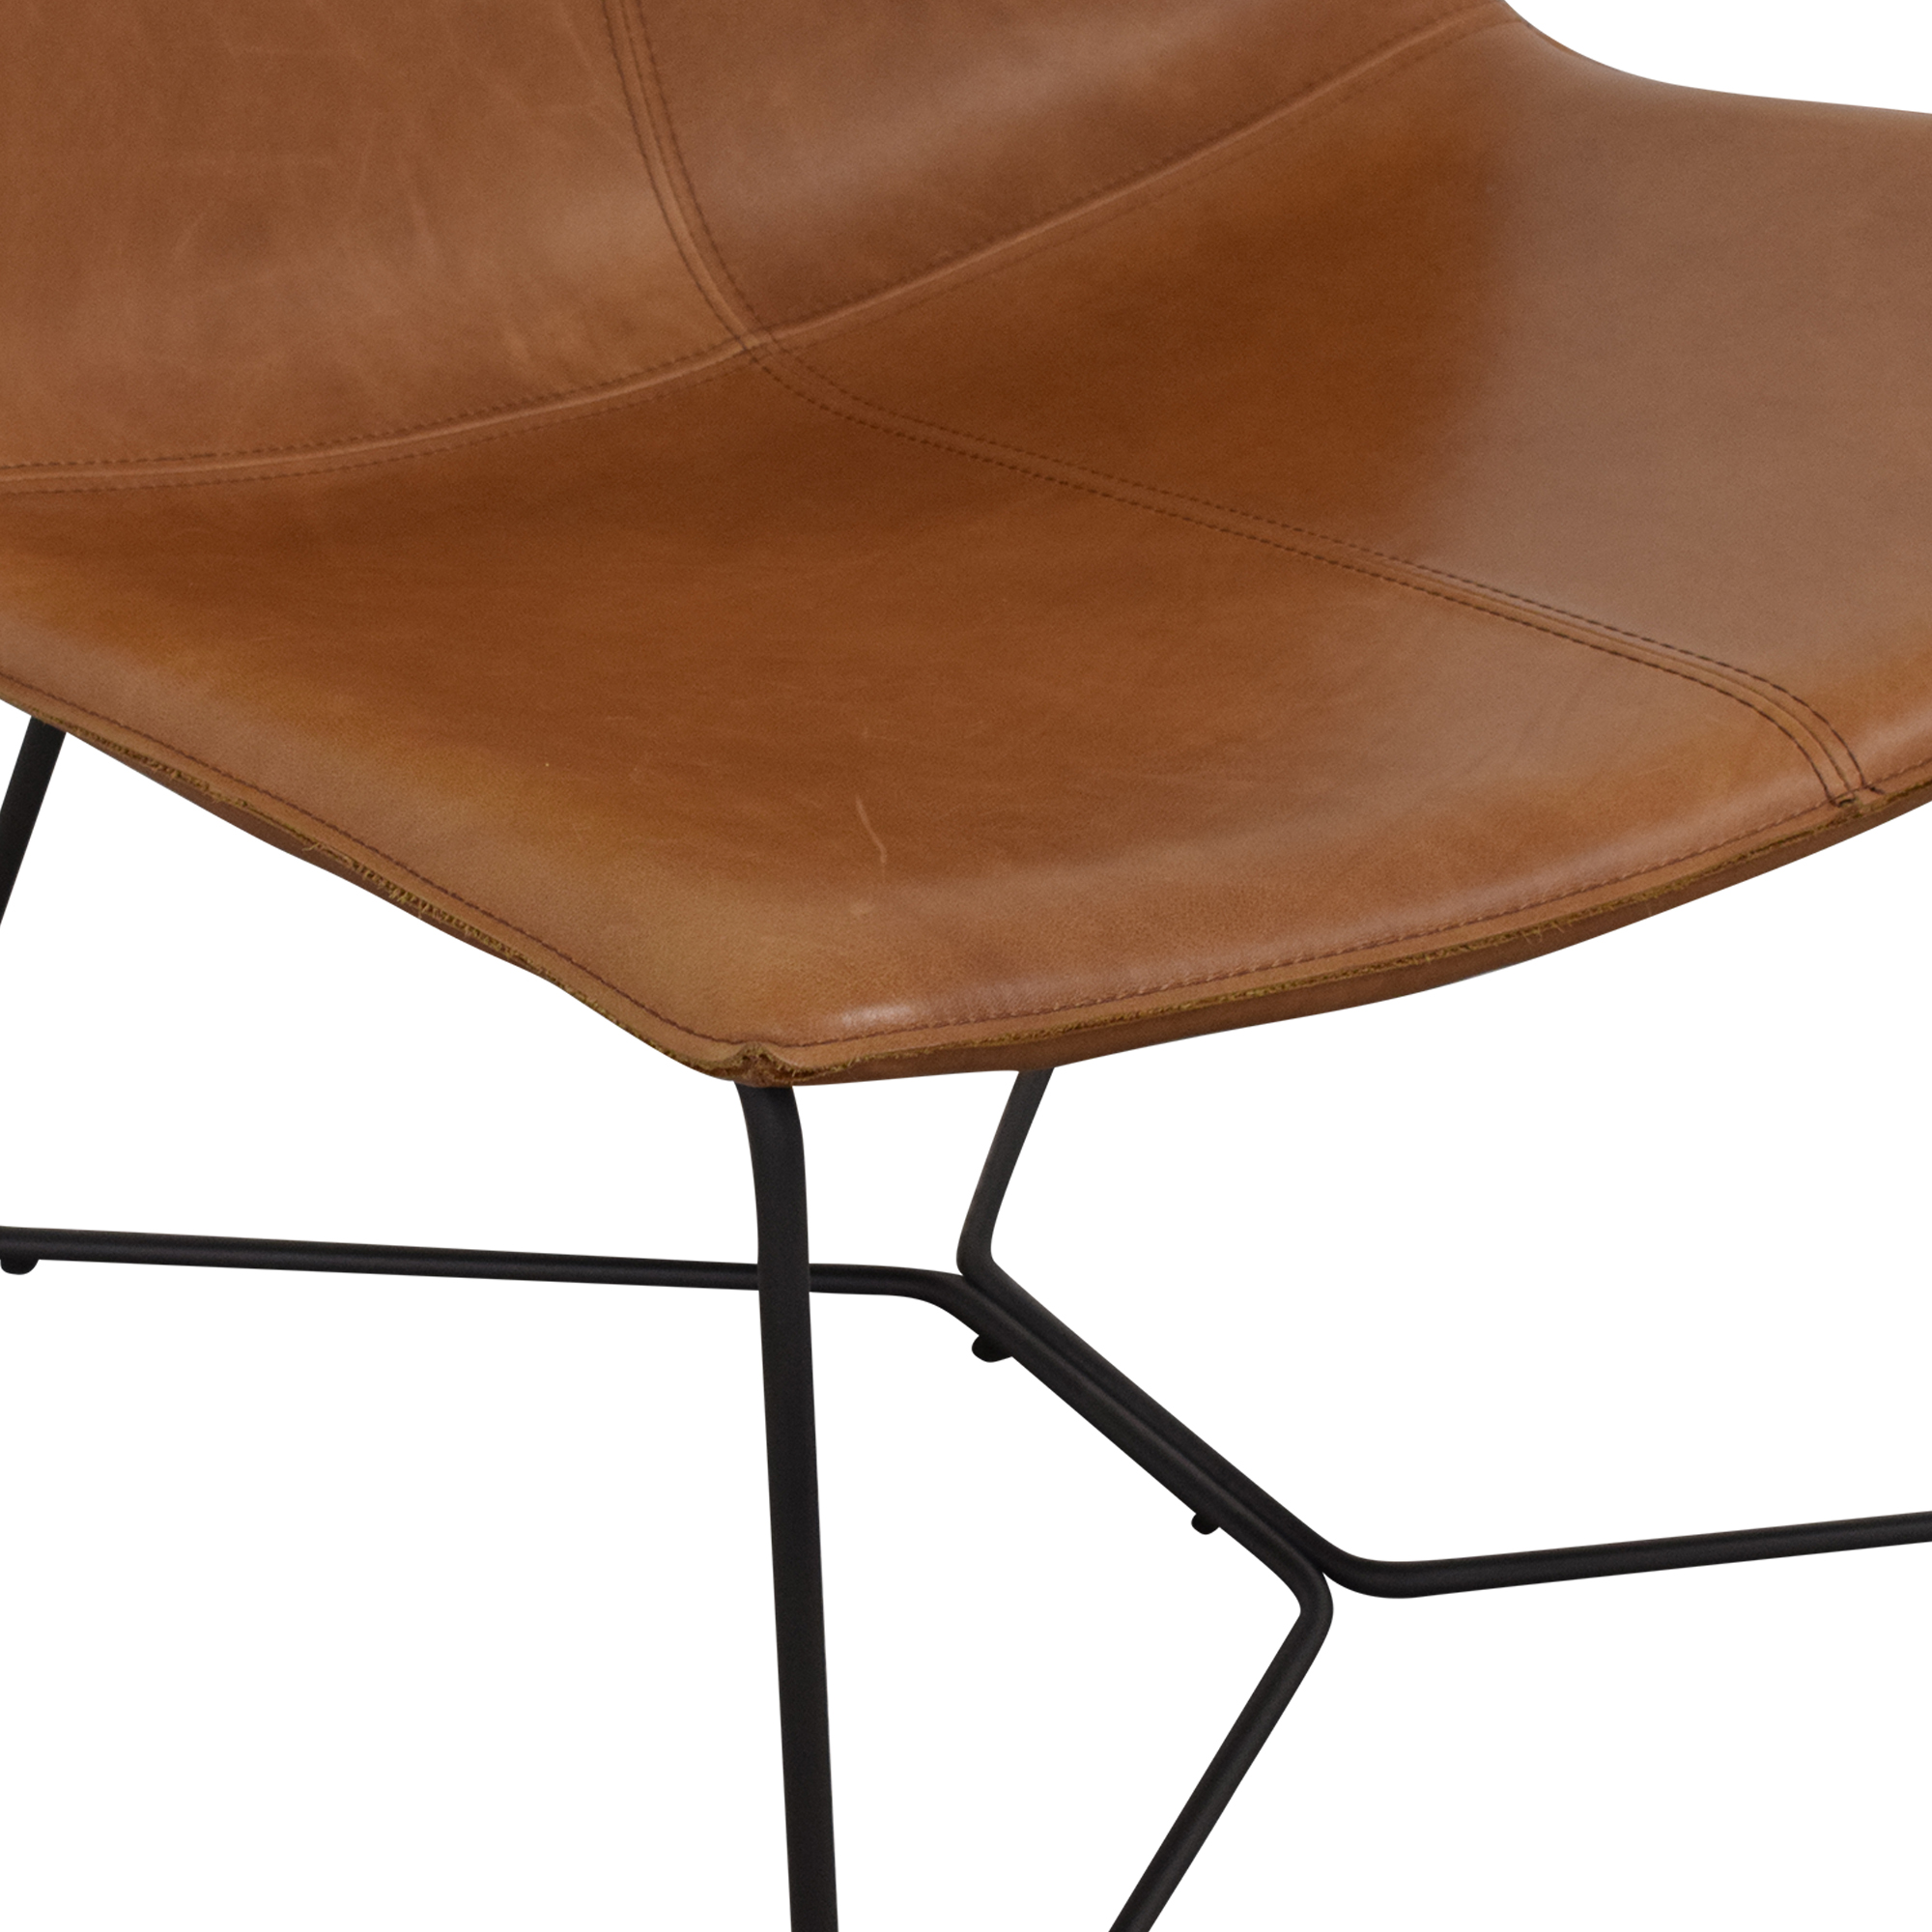 West Elm West Elm Slope Leather Lounge Chair used